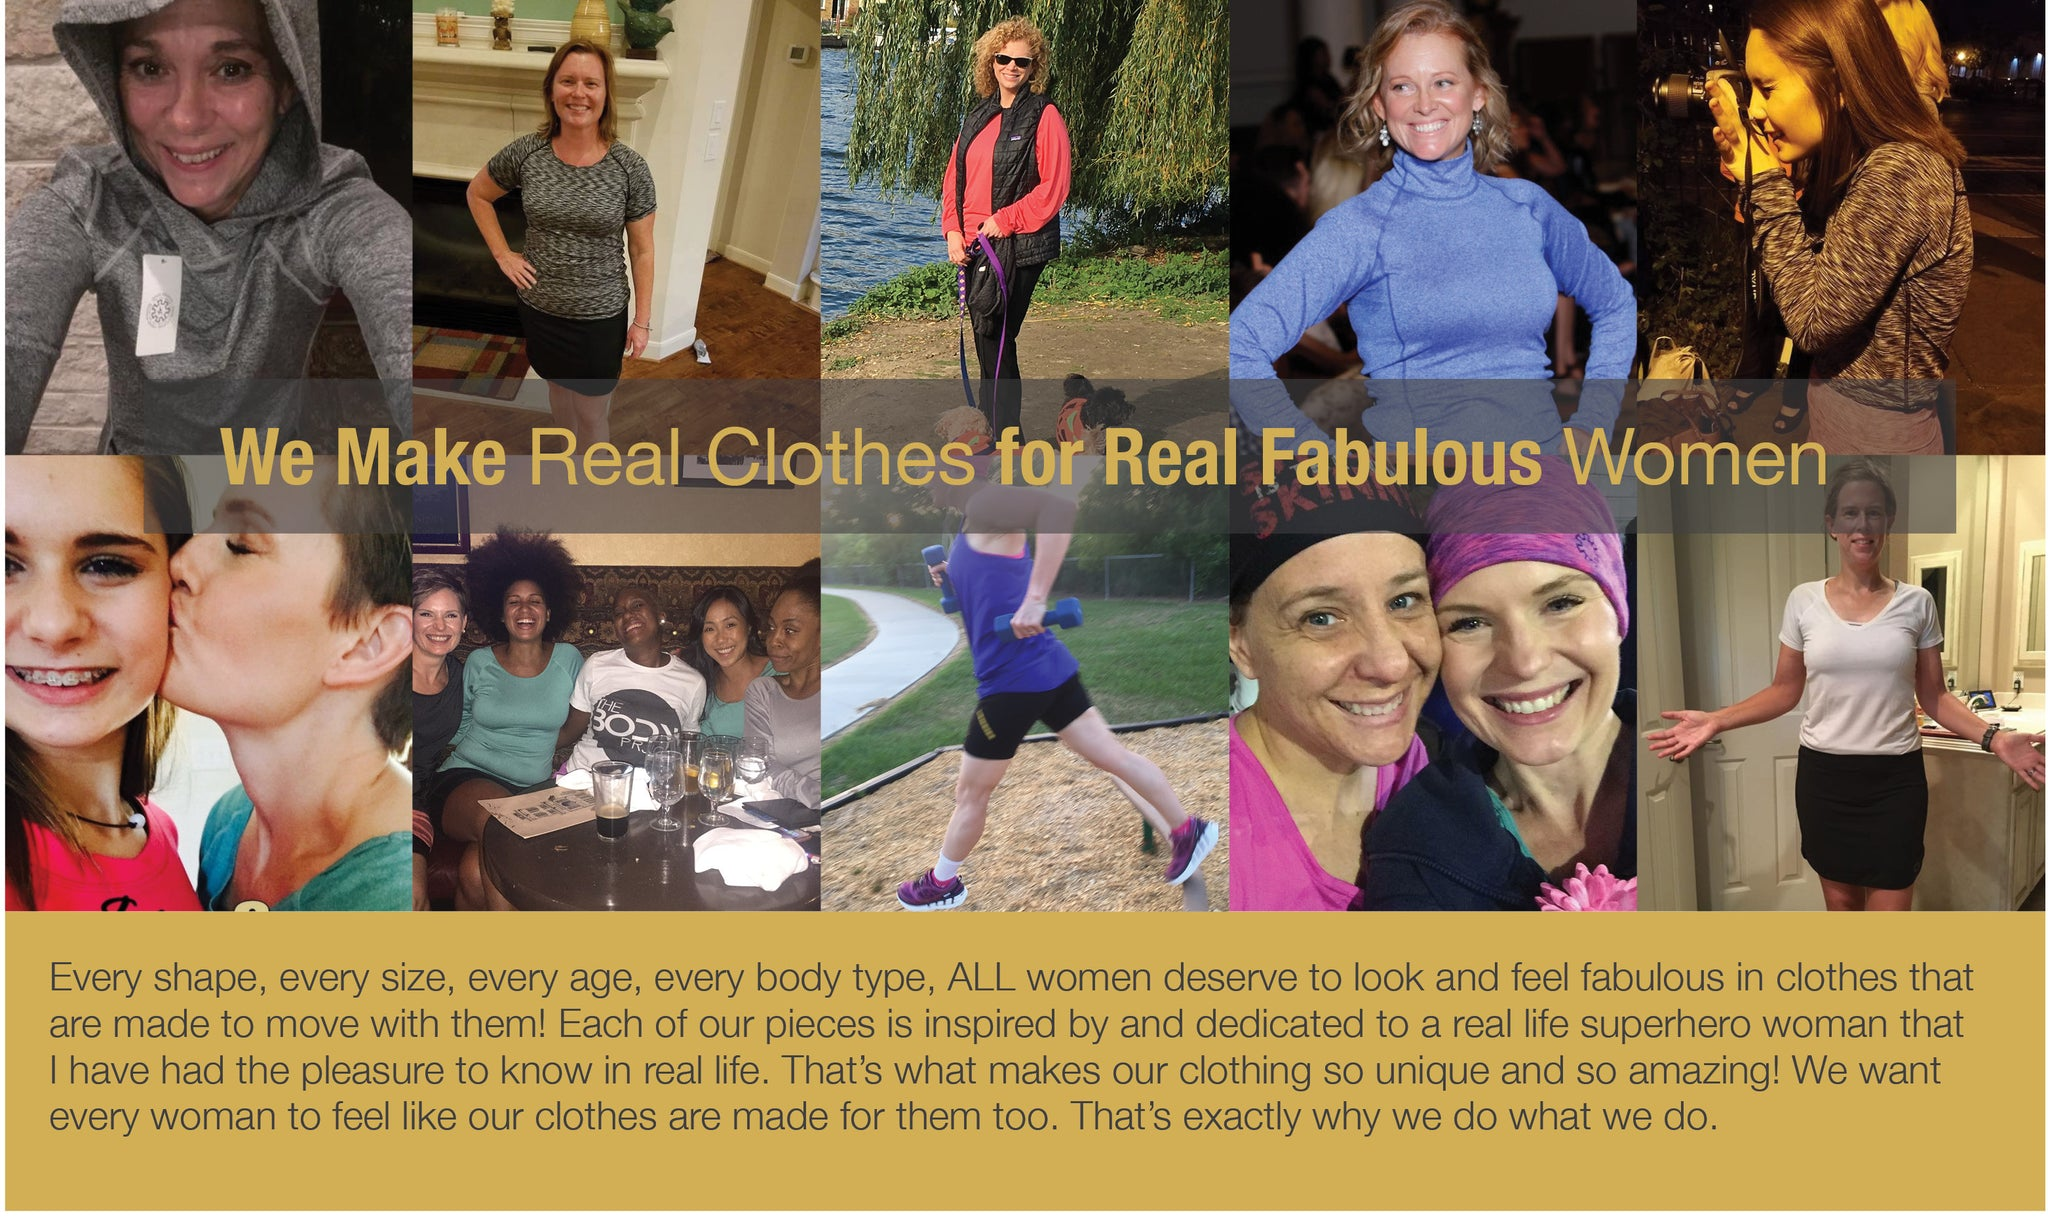 Joules Athletics makes real clothes for real fabulous women